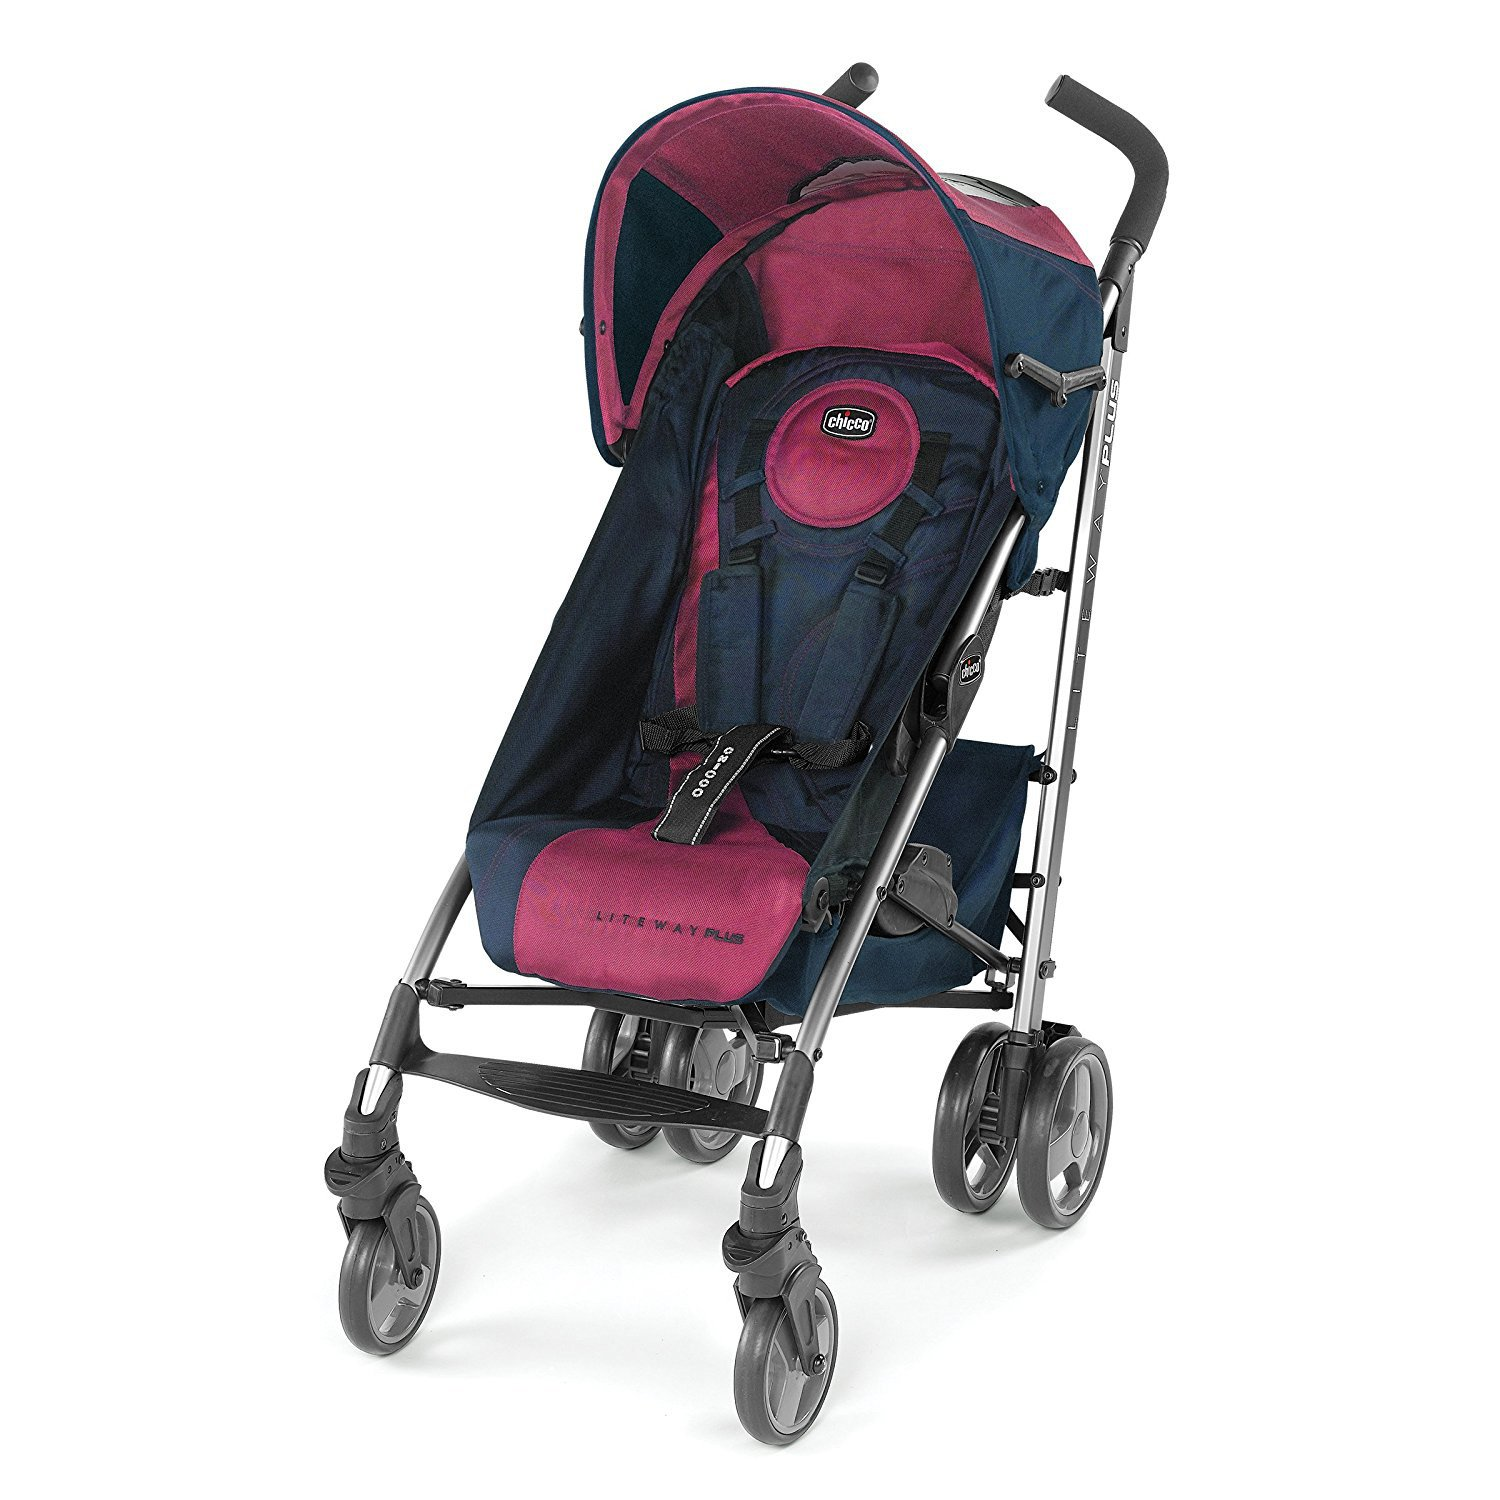 Chicco Liteway Plus Stroller, Blackberry by Chicco (Image #1)